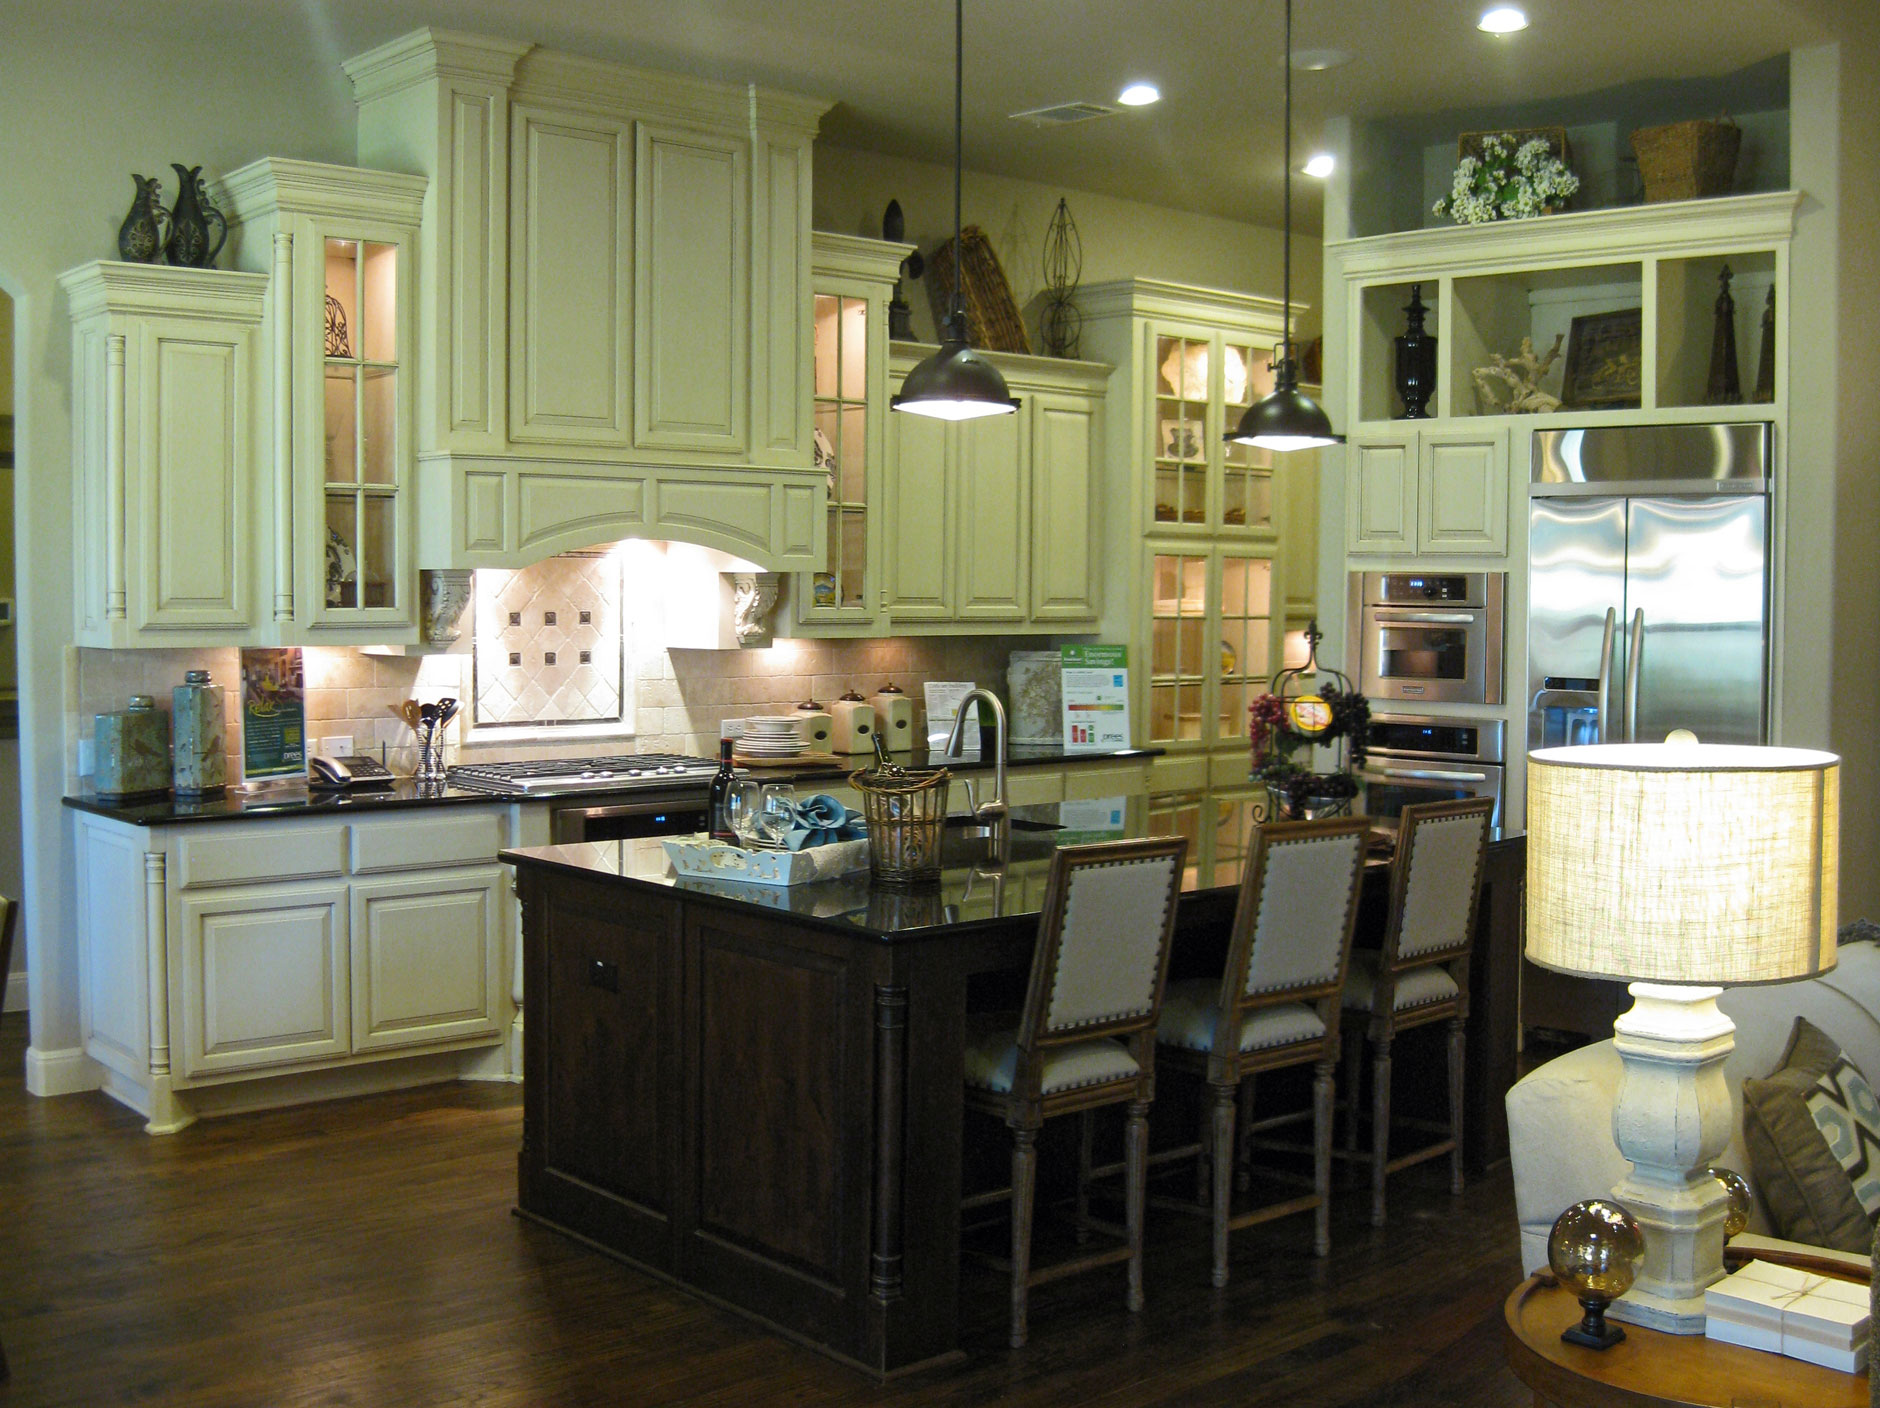 Burrows Cabinets kitchen cabinets with Elite vent hood in Bone with brown glaze